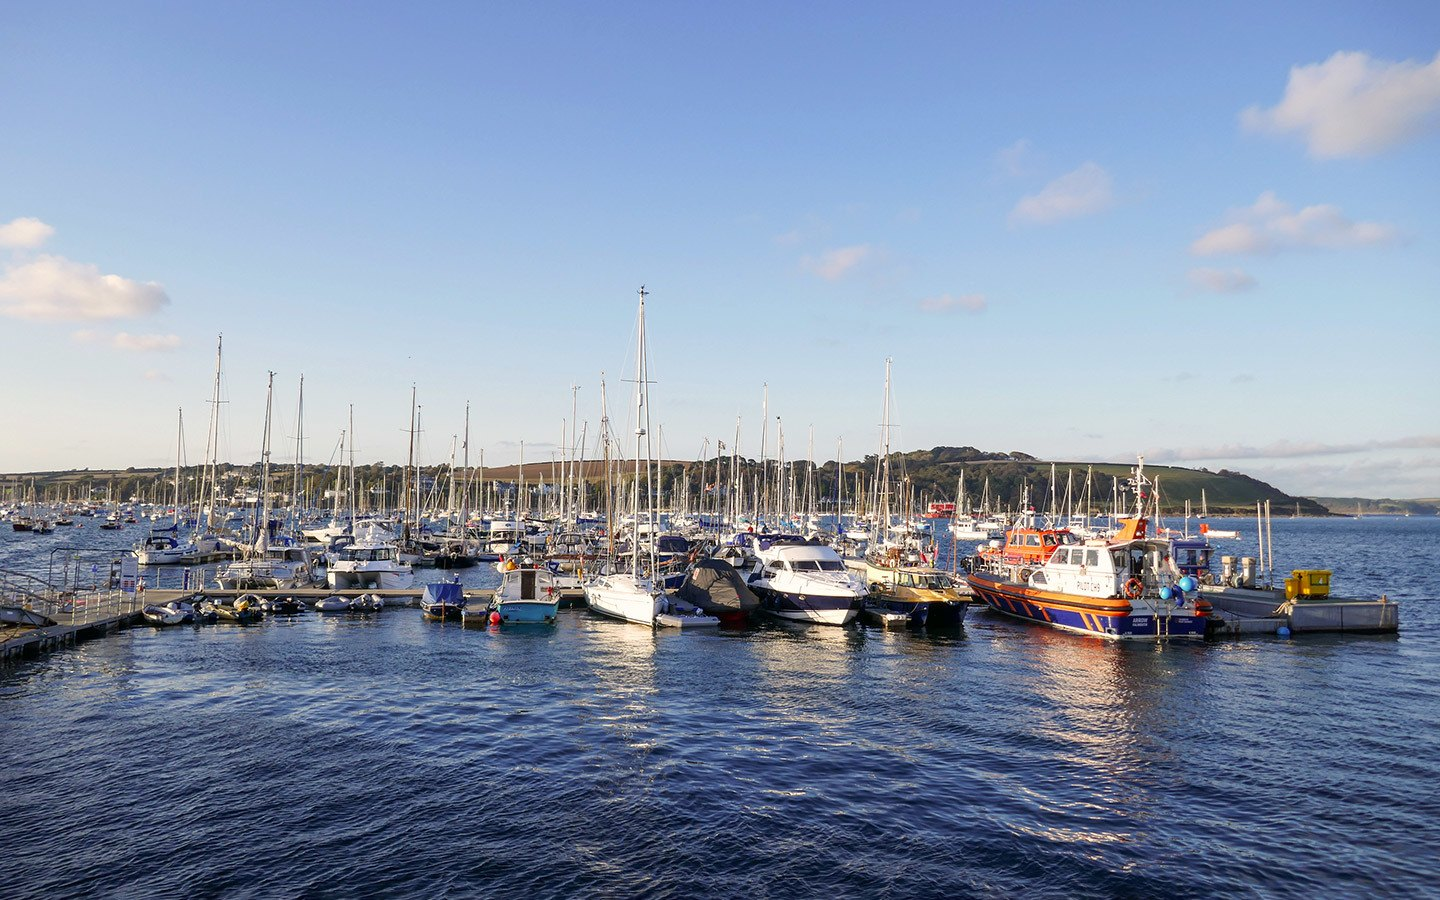 Boats in the harbour at sunset